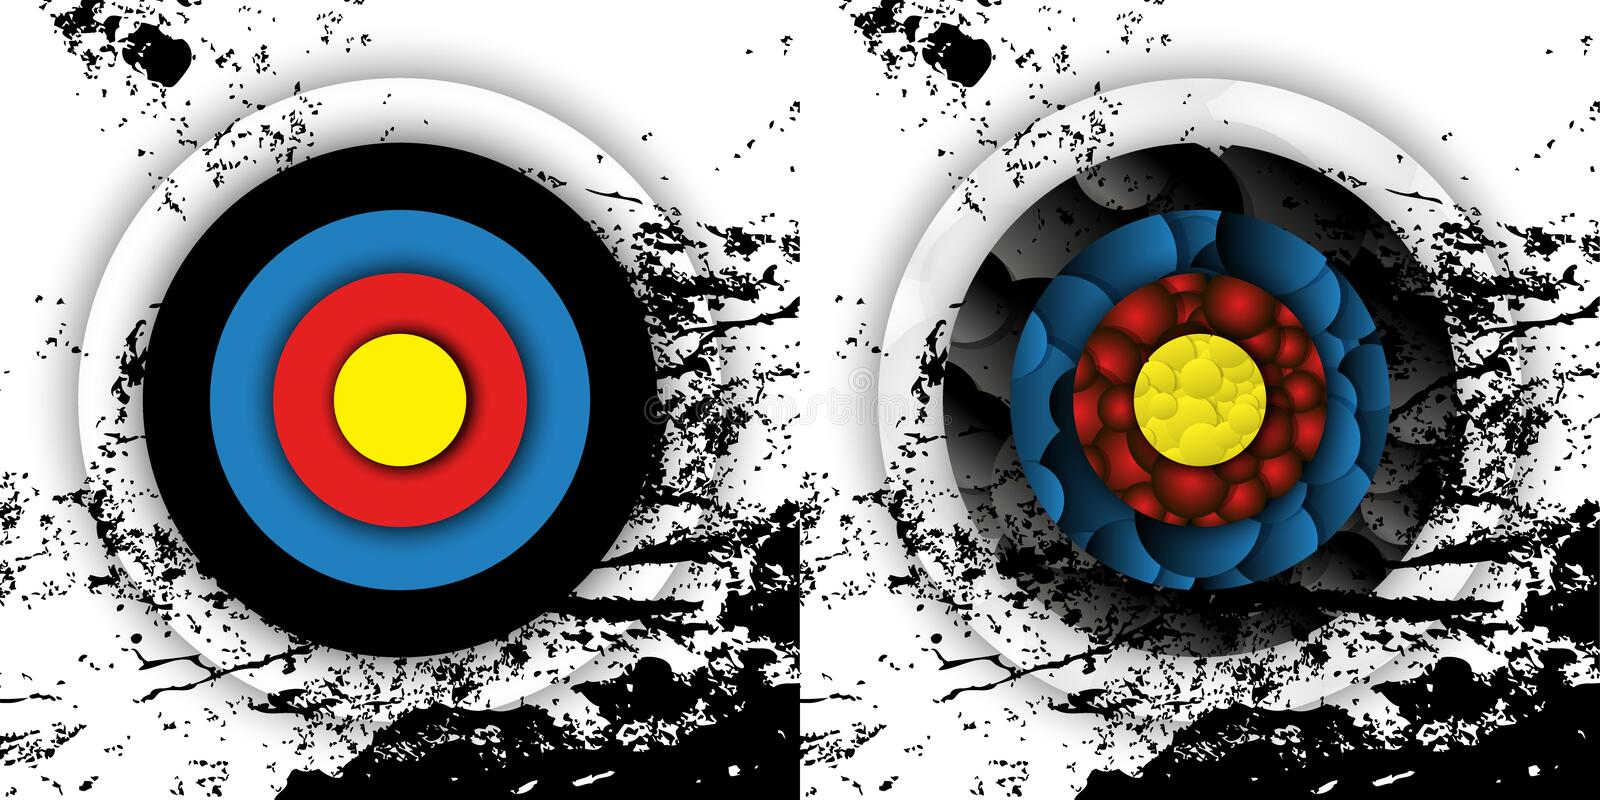 Grunge effect archery targets vector illustration